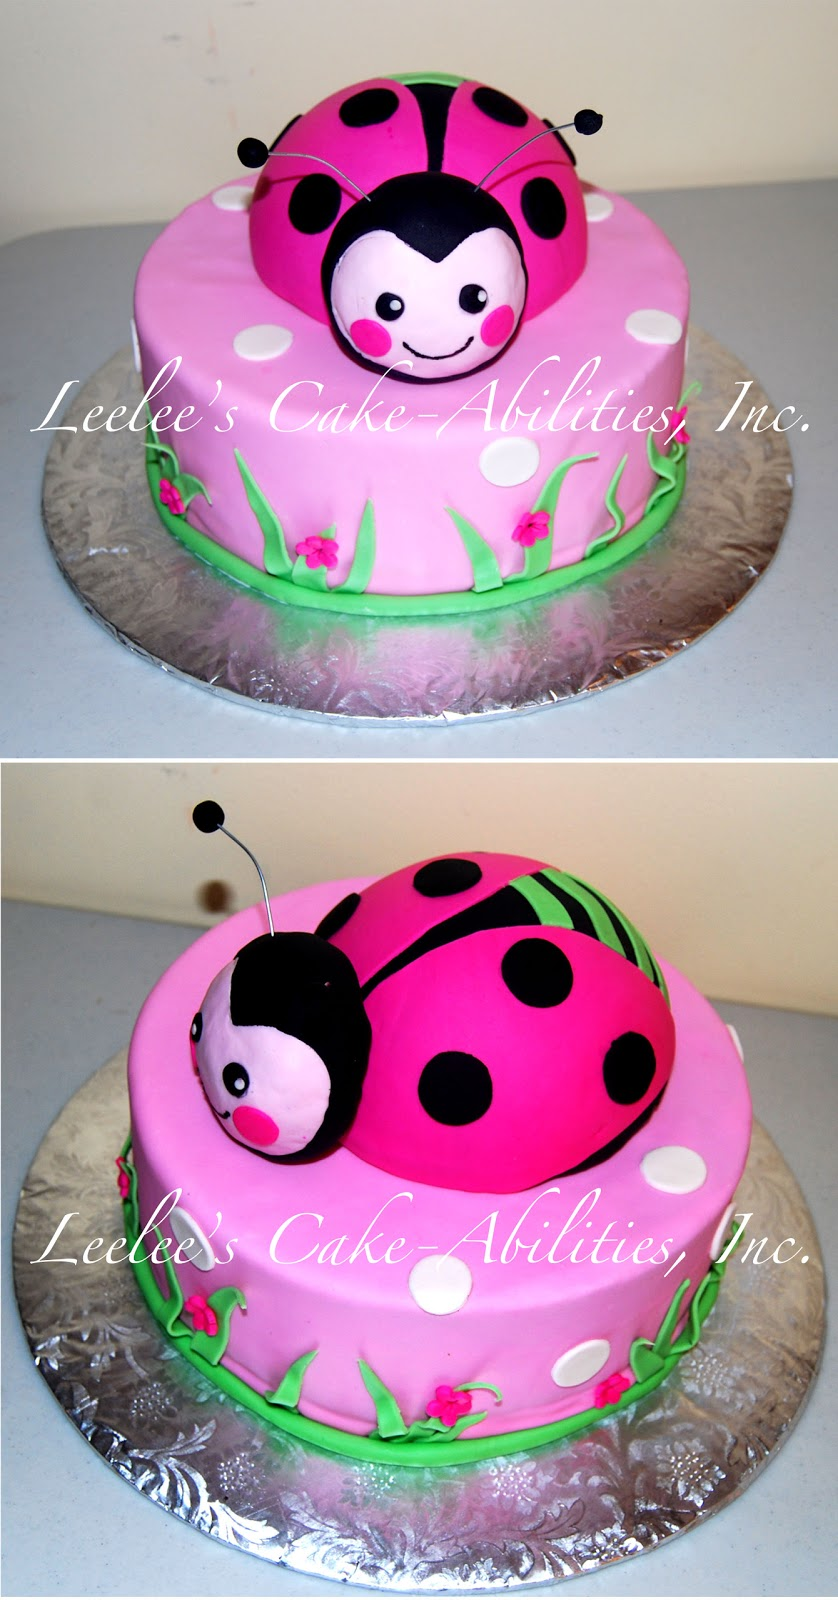 leelees cake abilities ladybug baby shower cake and invite